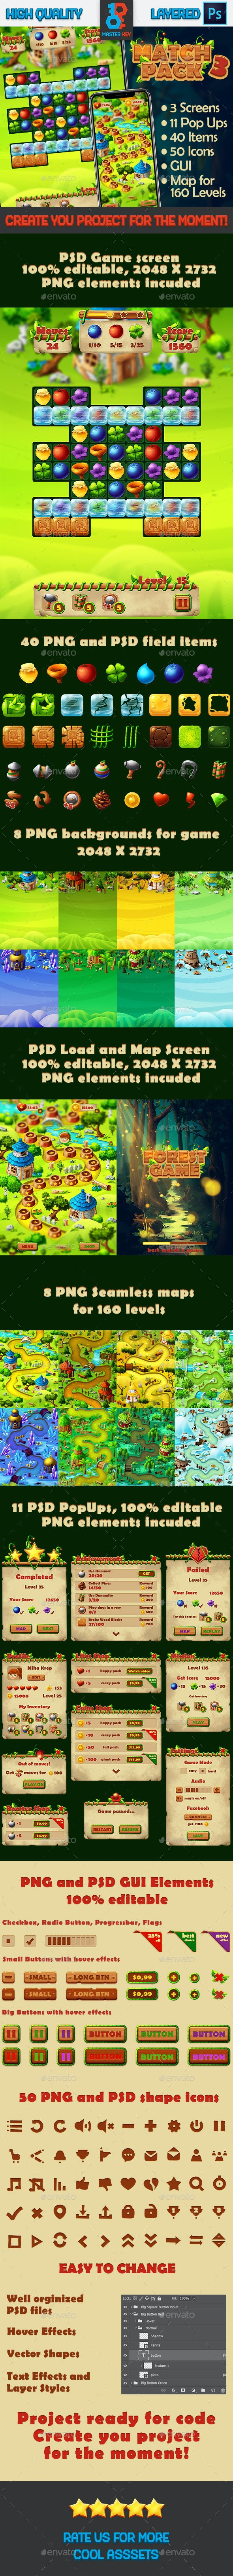 Forest Match 3 Full Game Asset - Game Kits Game Assets